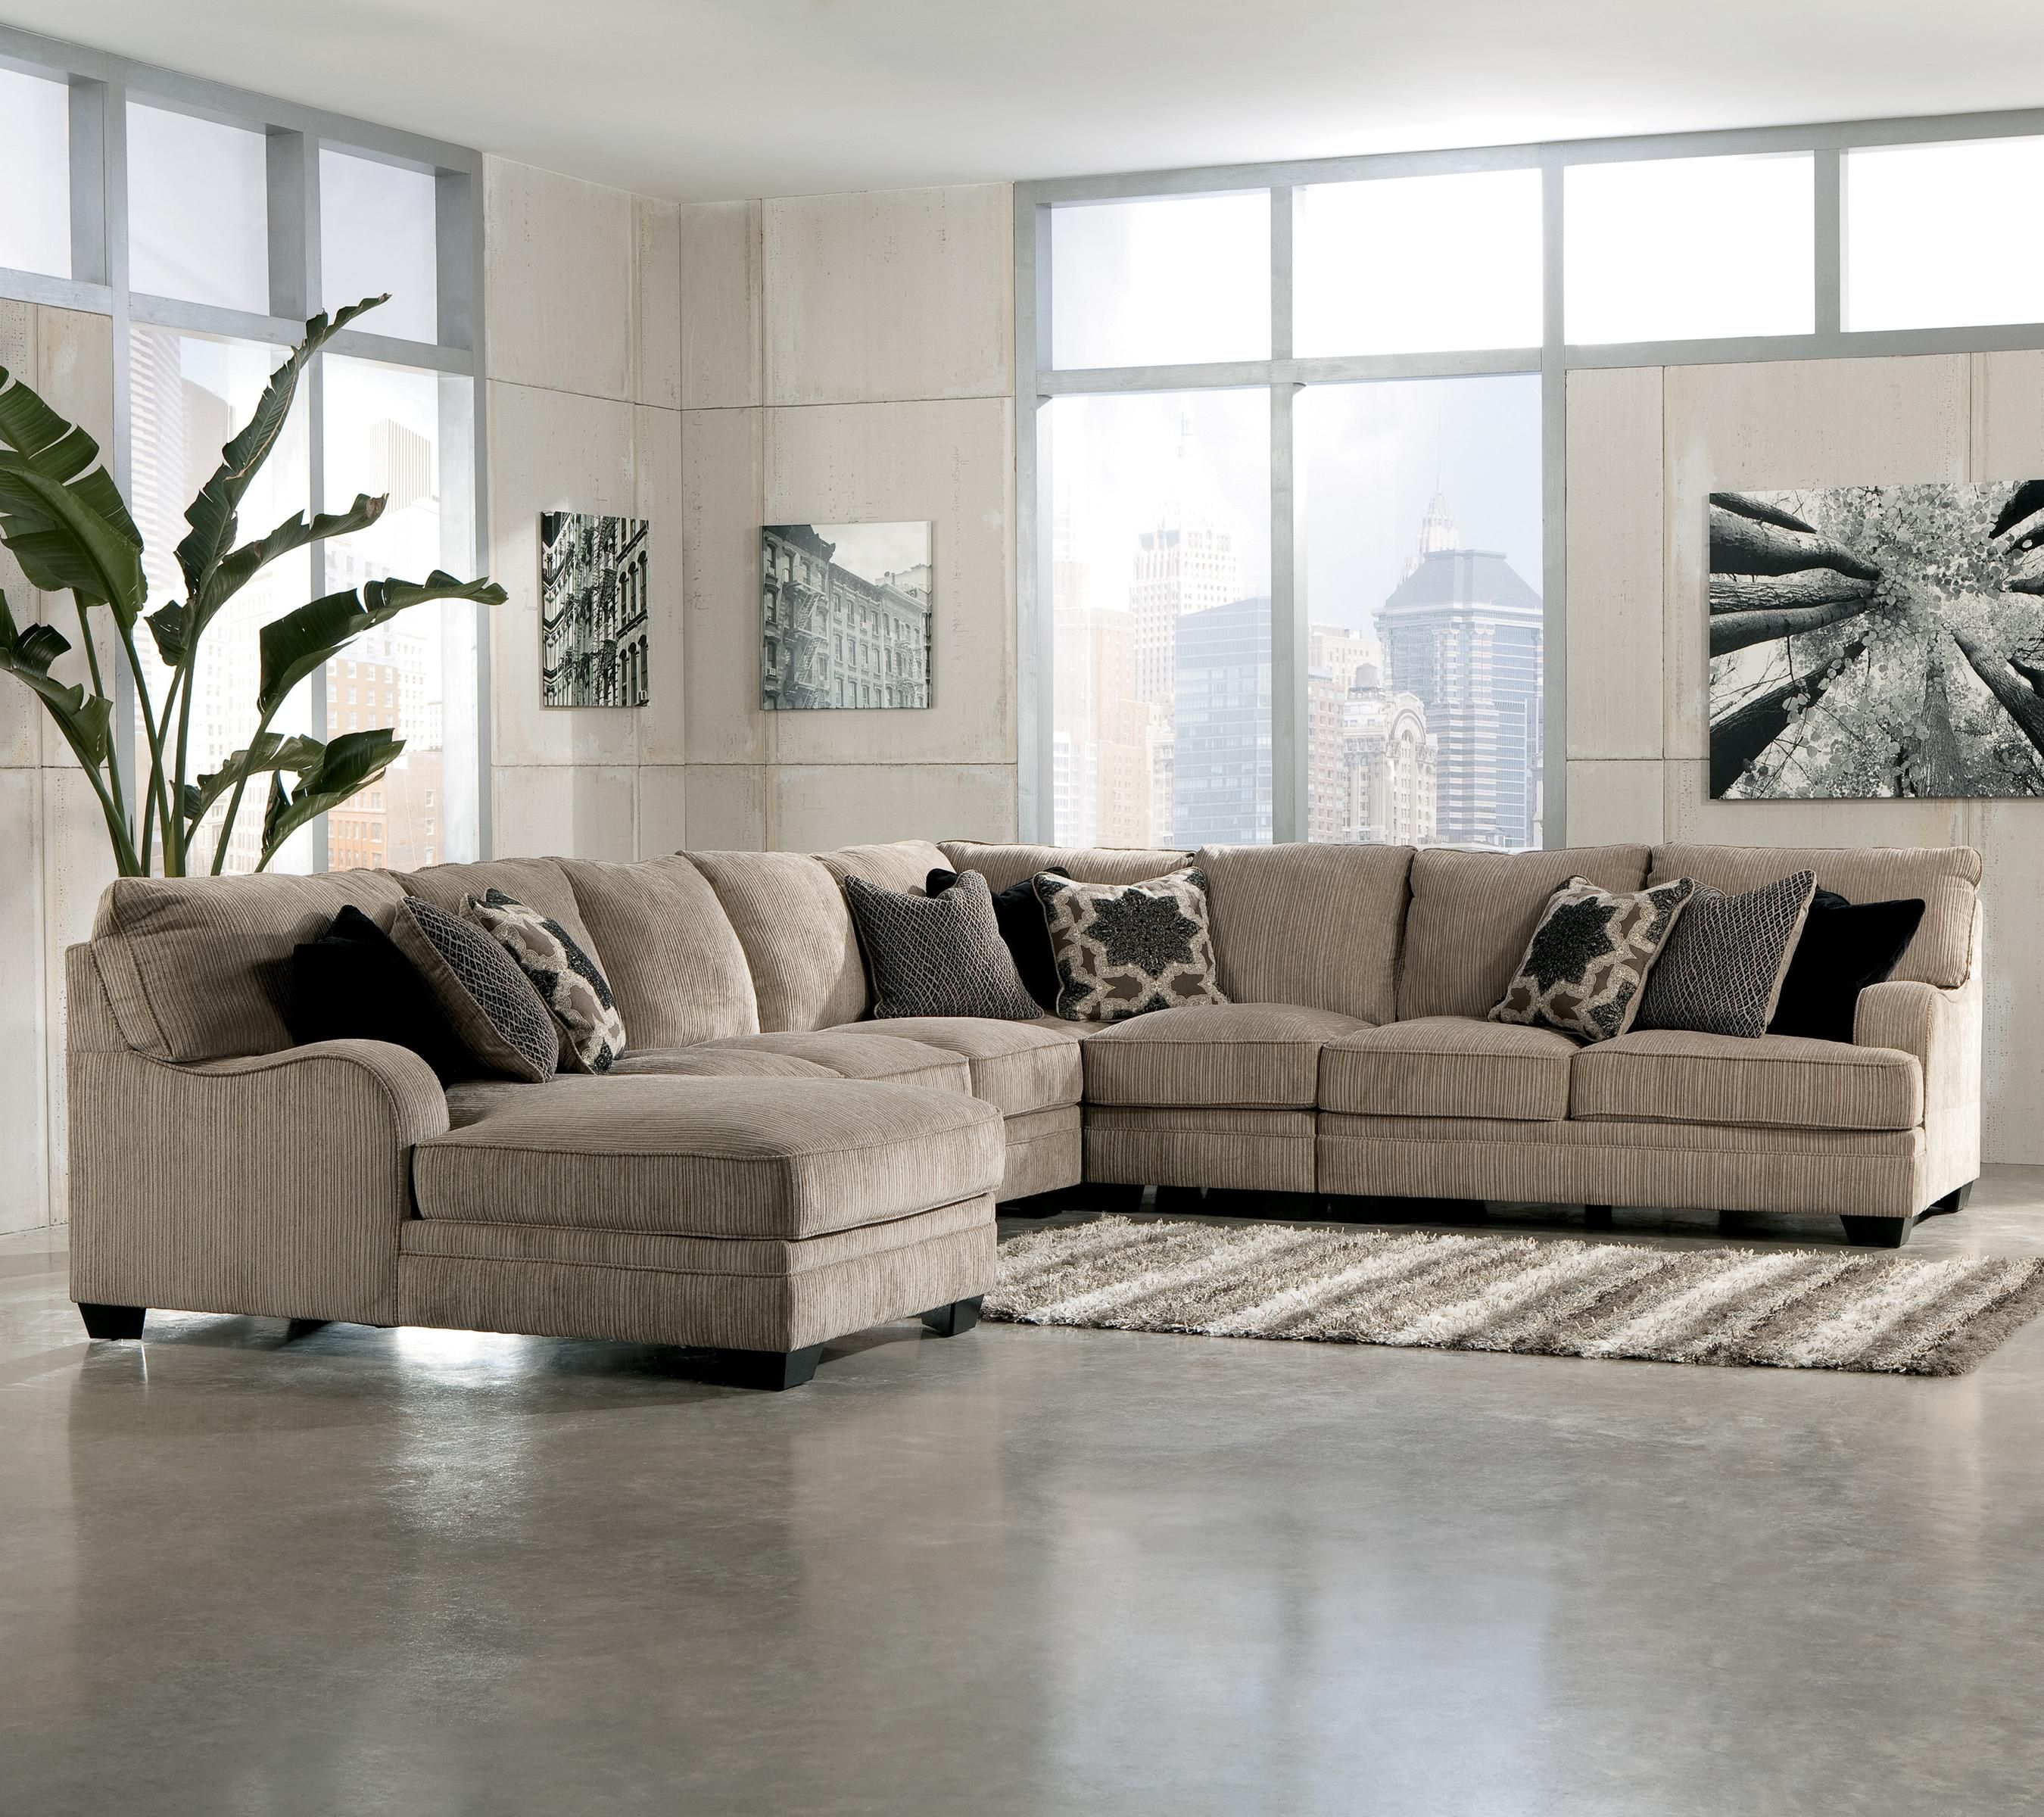 Signature Design by Ashley Katisha - Platinum Sectional Sofa with Left Chaise - Miskelly Furniture - Sofa Sectional Jackson Mississippi : gray sectional sofa ashley furniture - Sectionals, Sofas & Couches